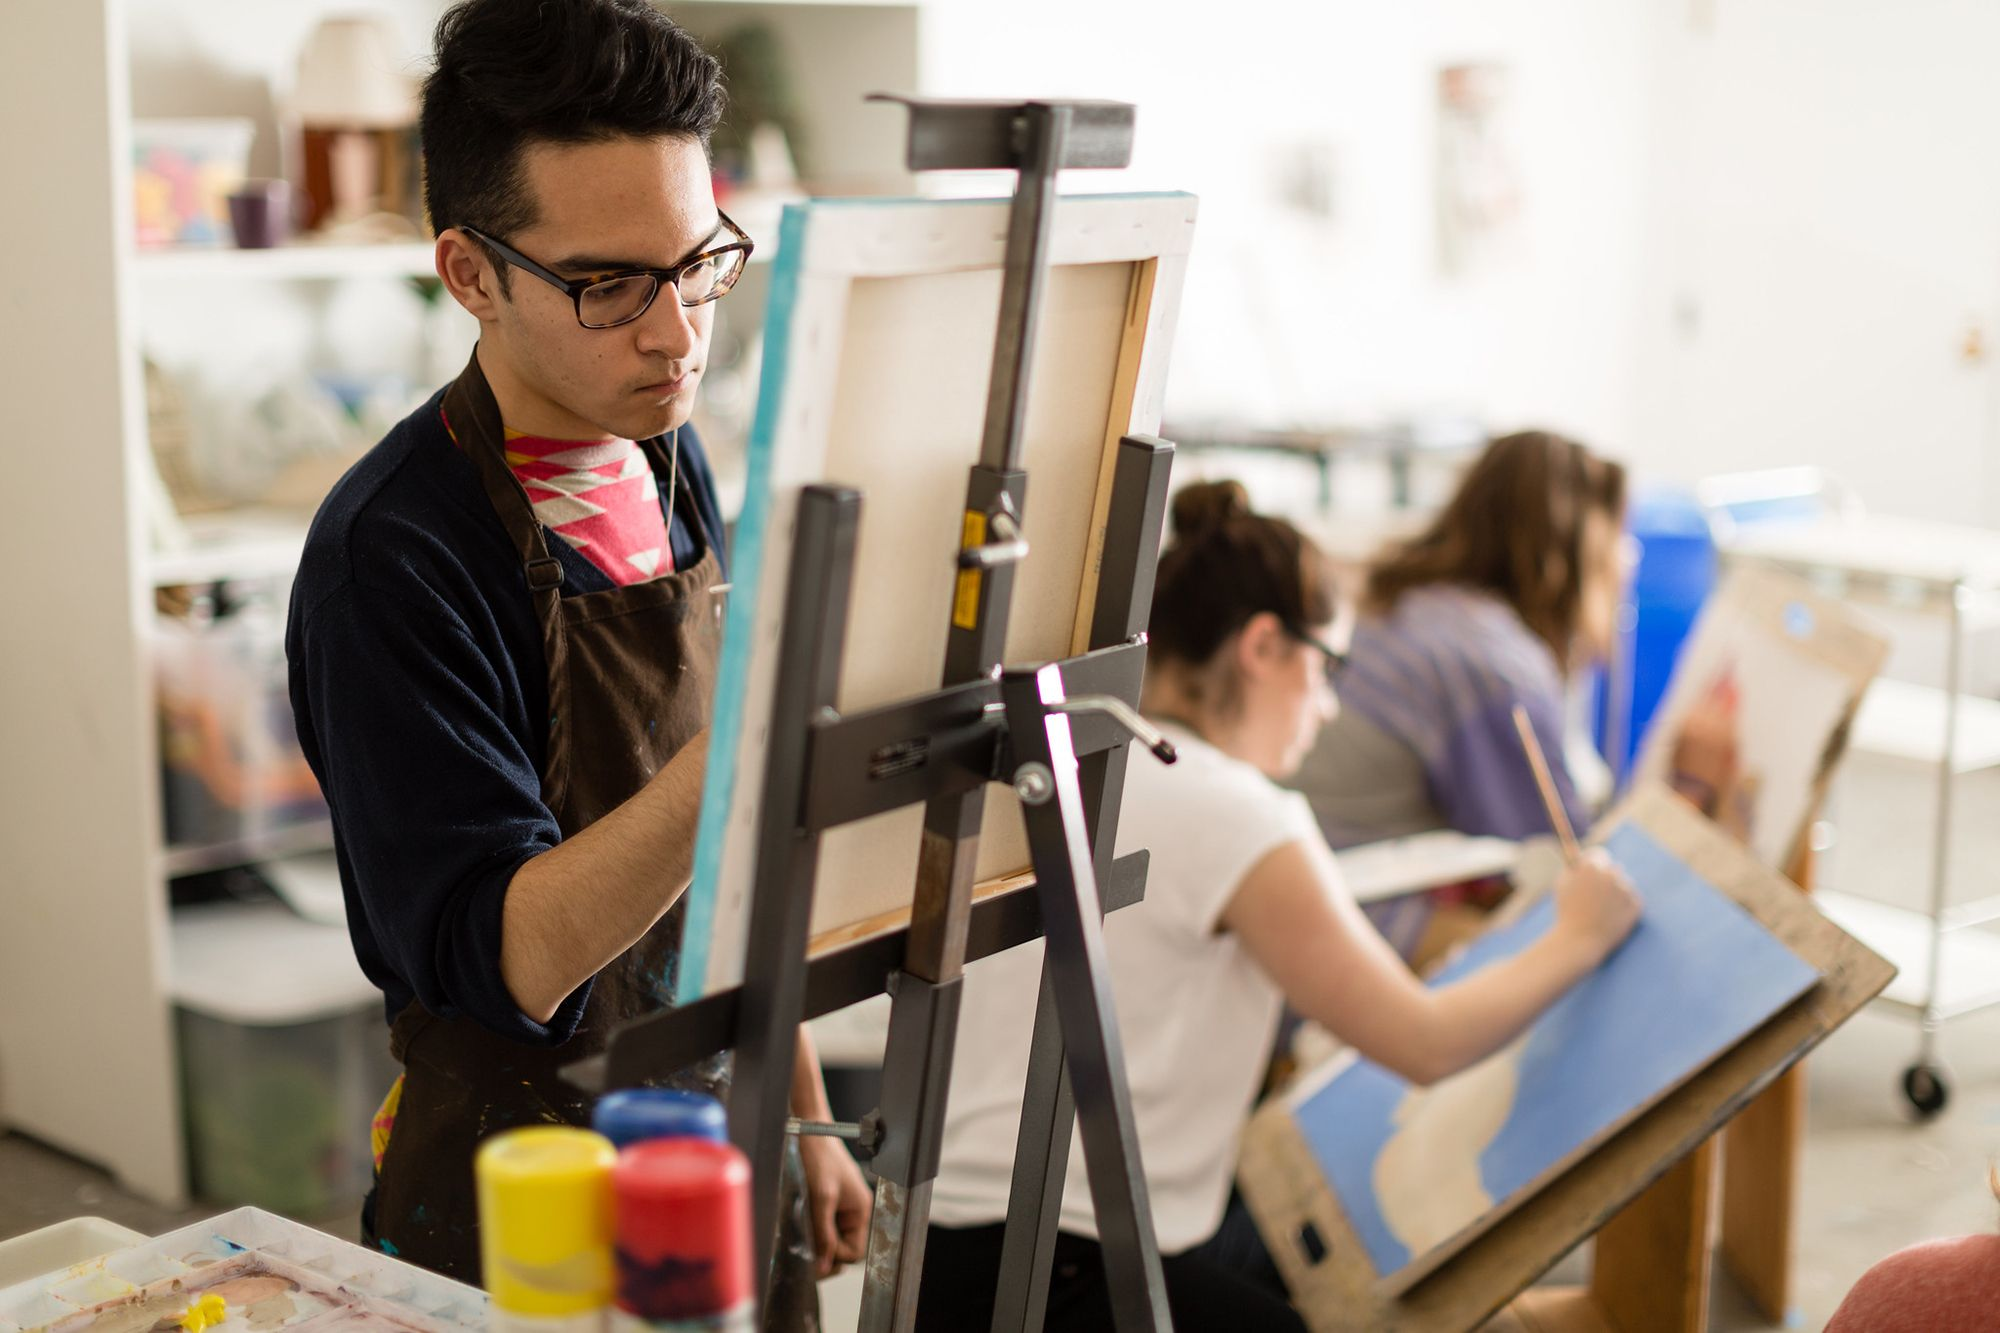 A studio art college student painting during class.